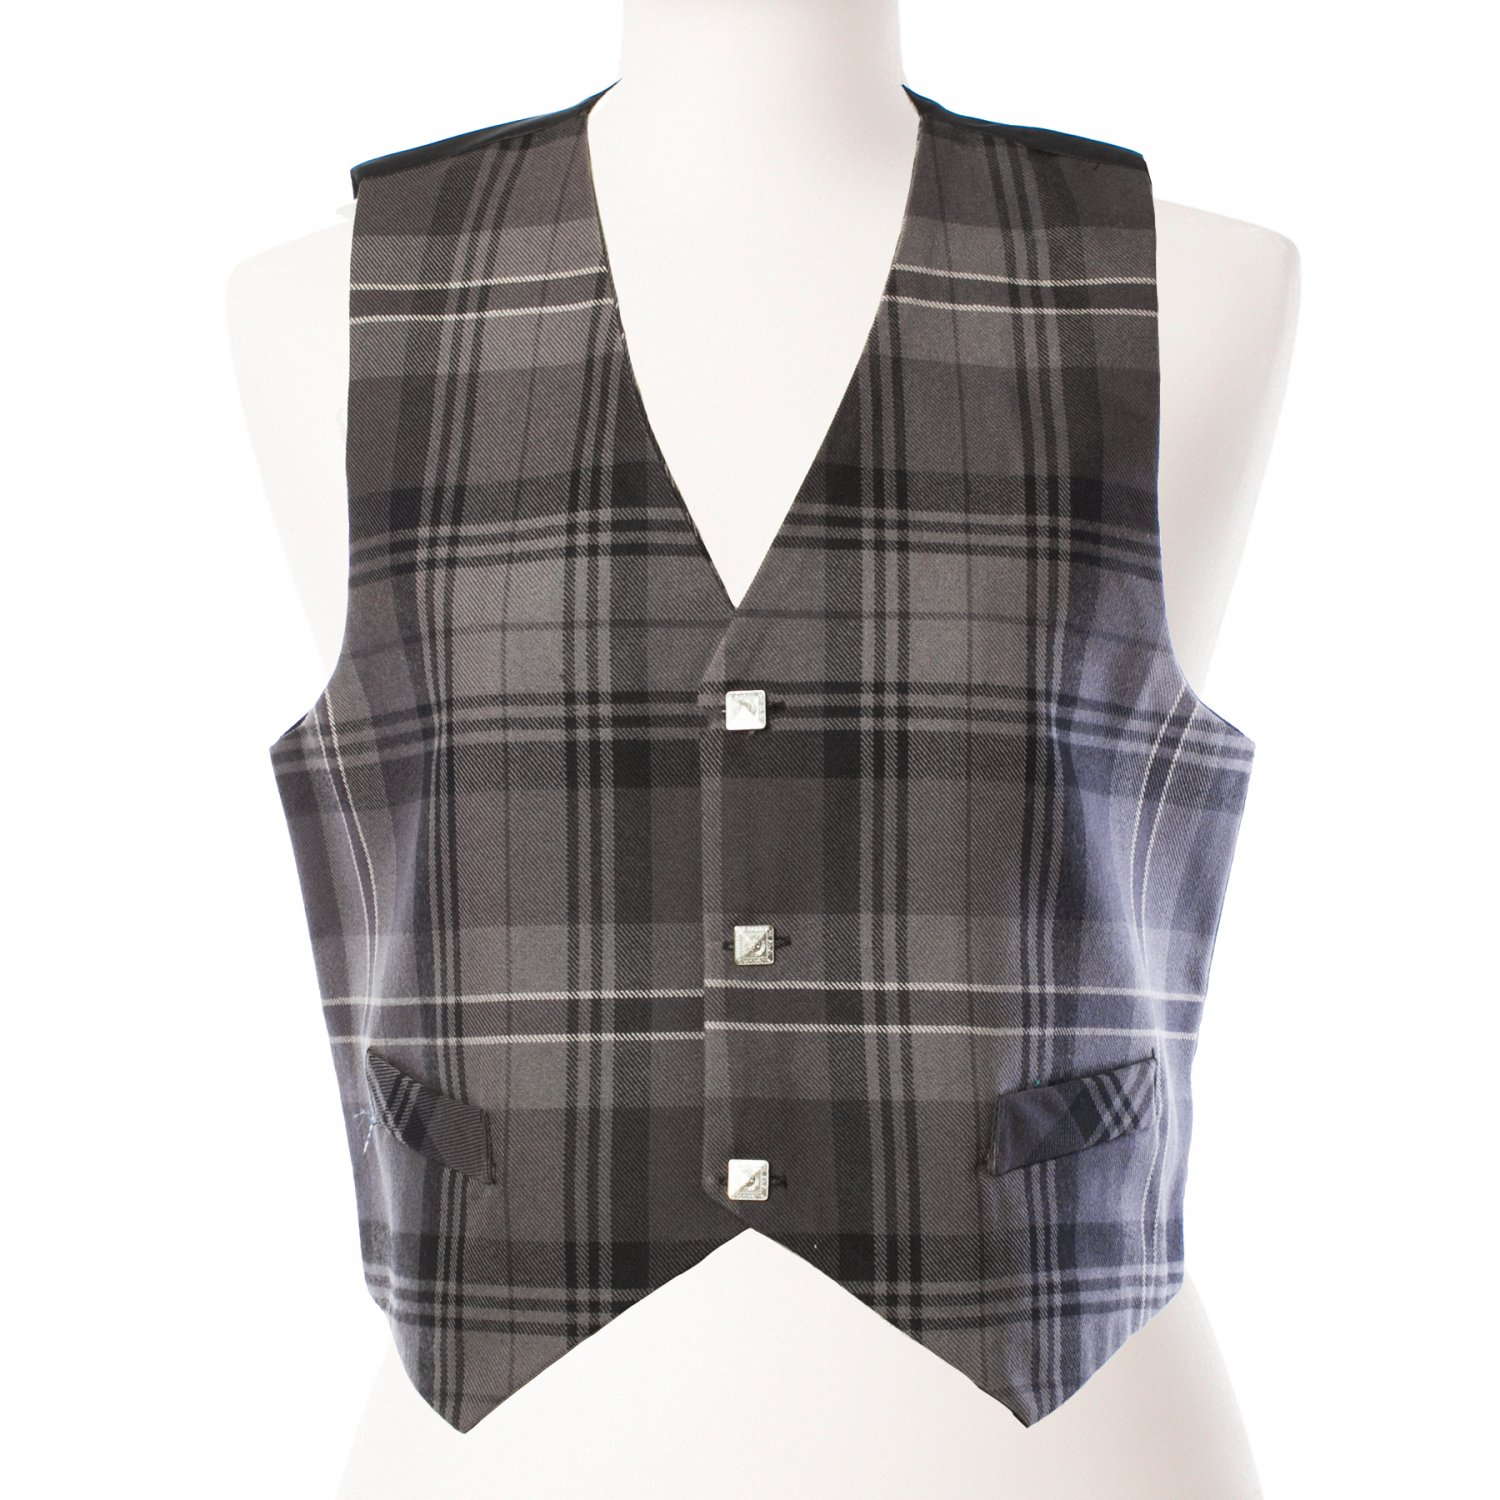 DE: Size 46 Premium Quality Gray Color Highland Tartan Plaid Vest Scottish Kilt Jacket Vest